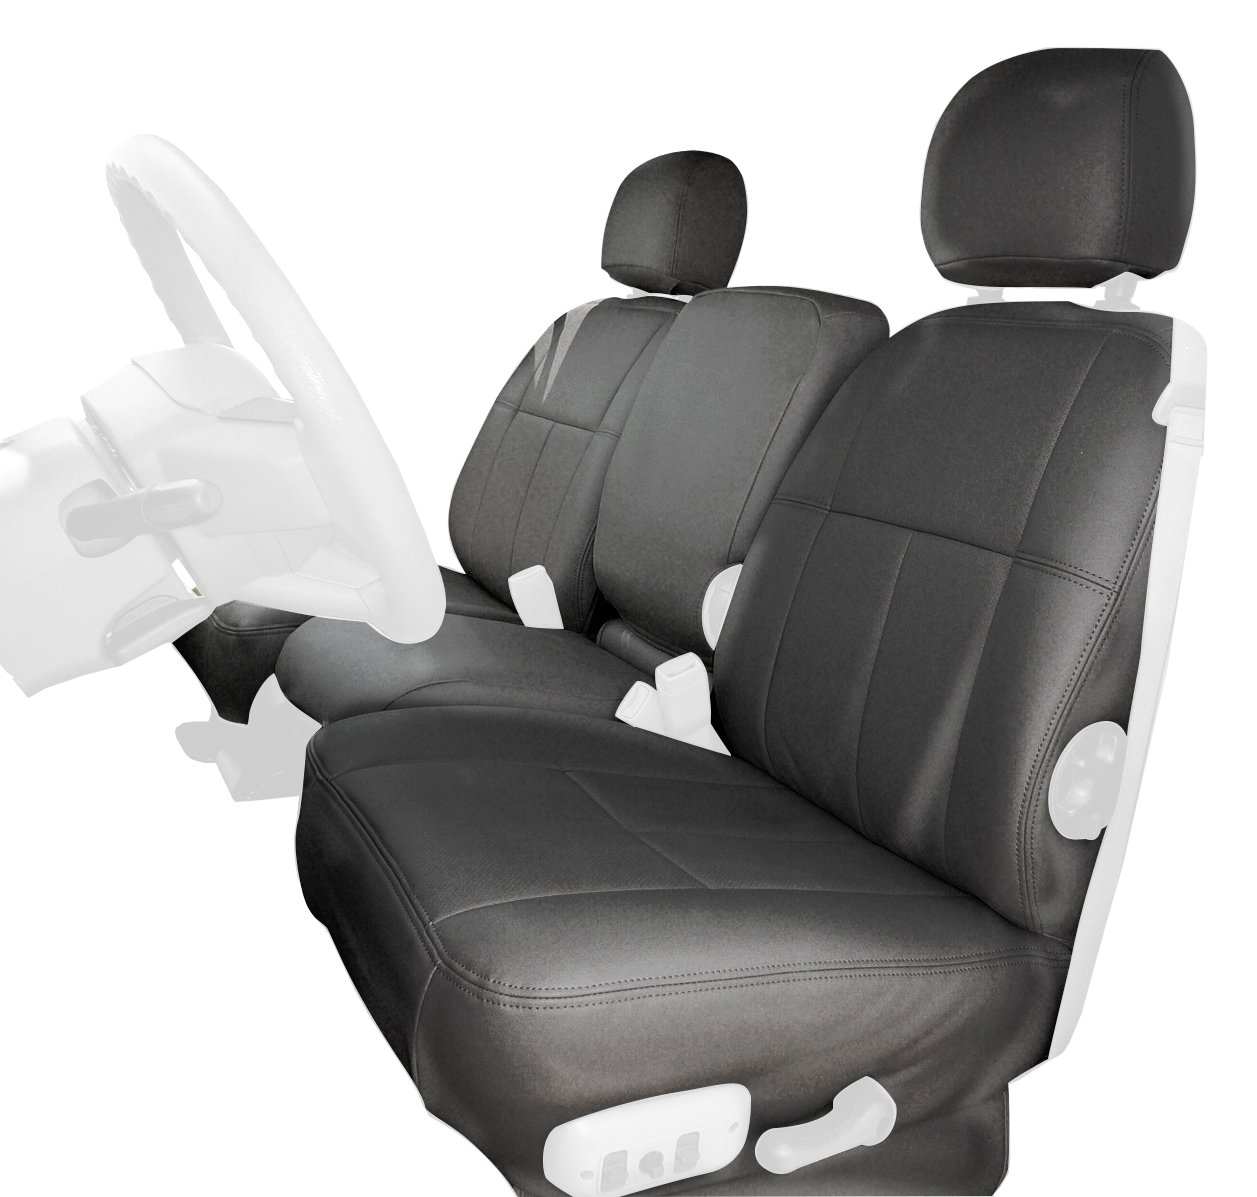 Clazzio 753041lgy Light Grey Leather Front Row Seat Cover for Chevrolet Tahoe//Suburban